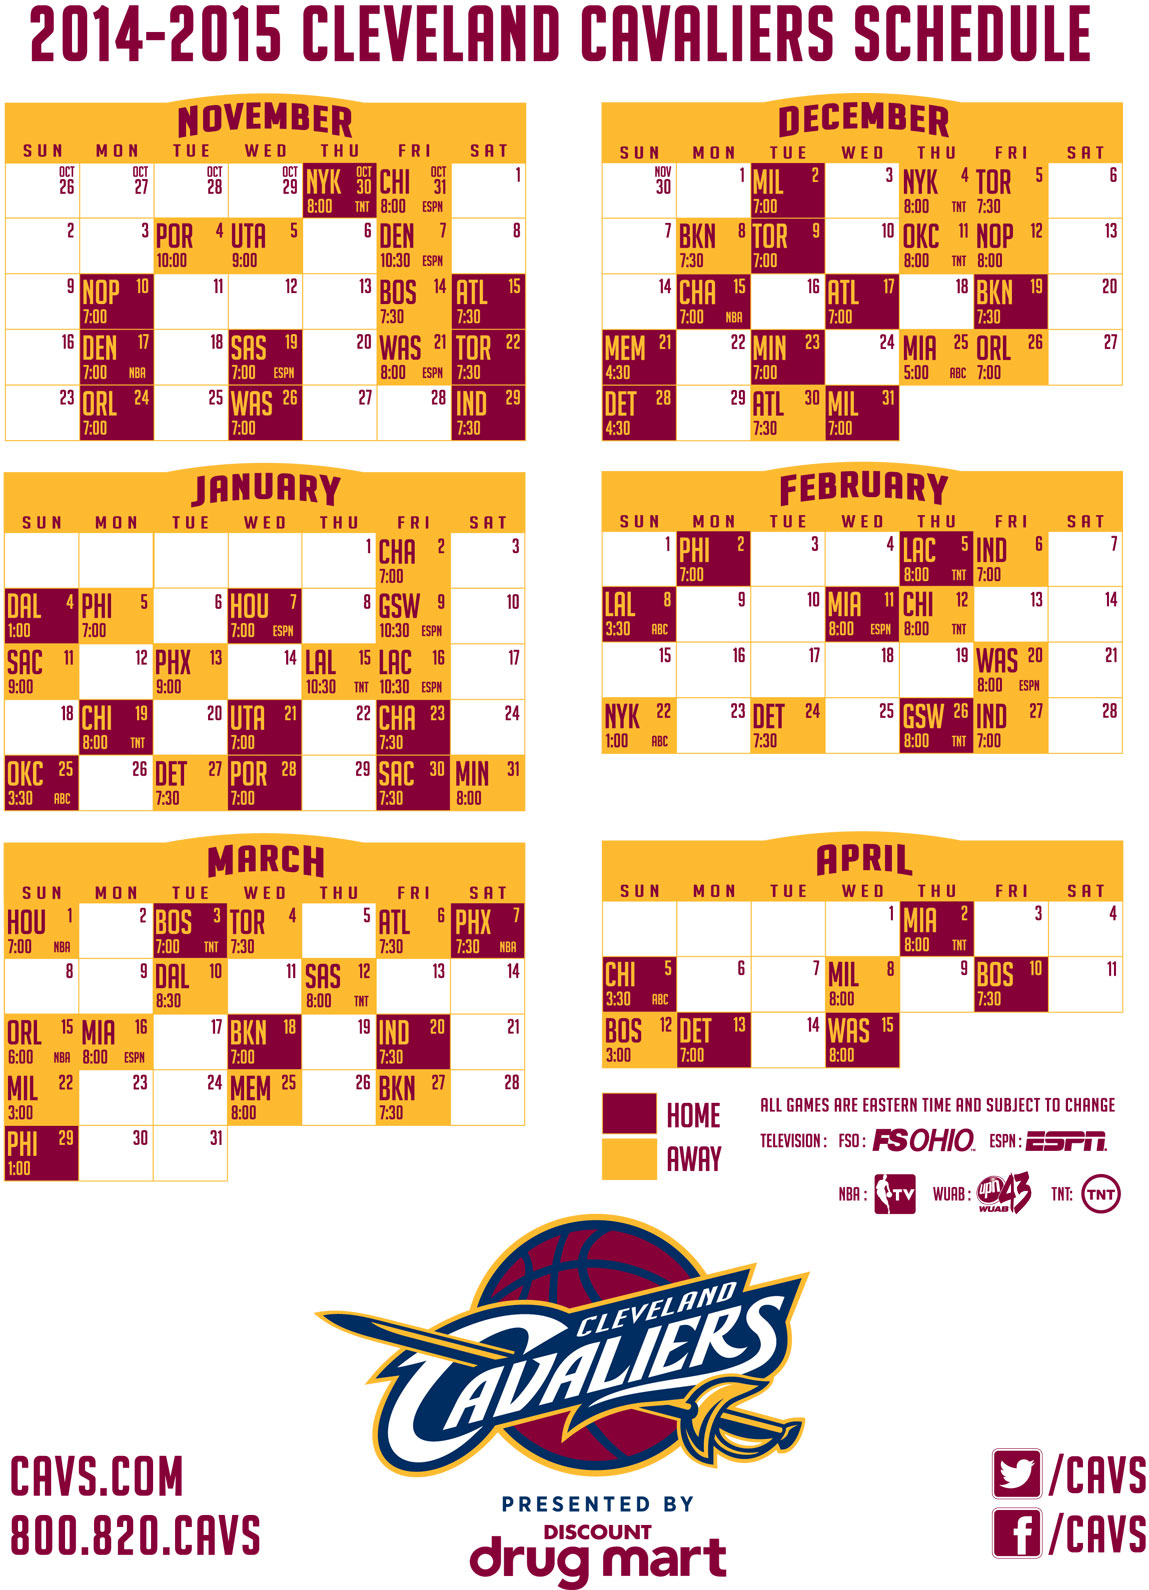 image relating to Cavs Schedule Printable referred to as 2014-15 Cleveland Cavaliers Agenda - WEOL Radio 930 AM